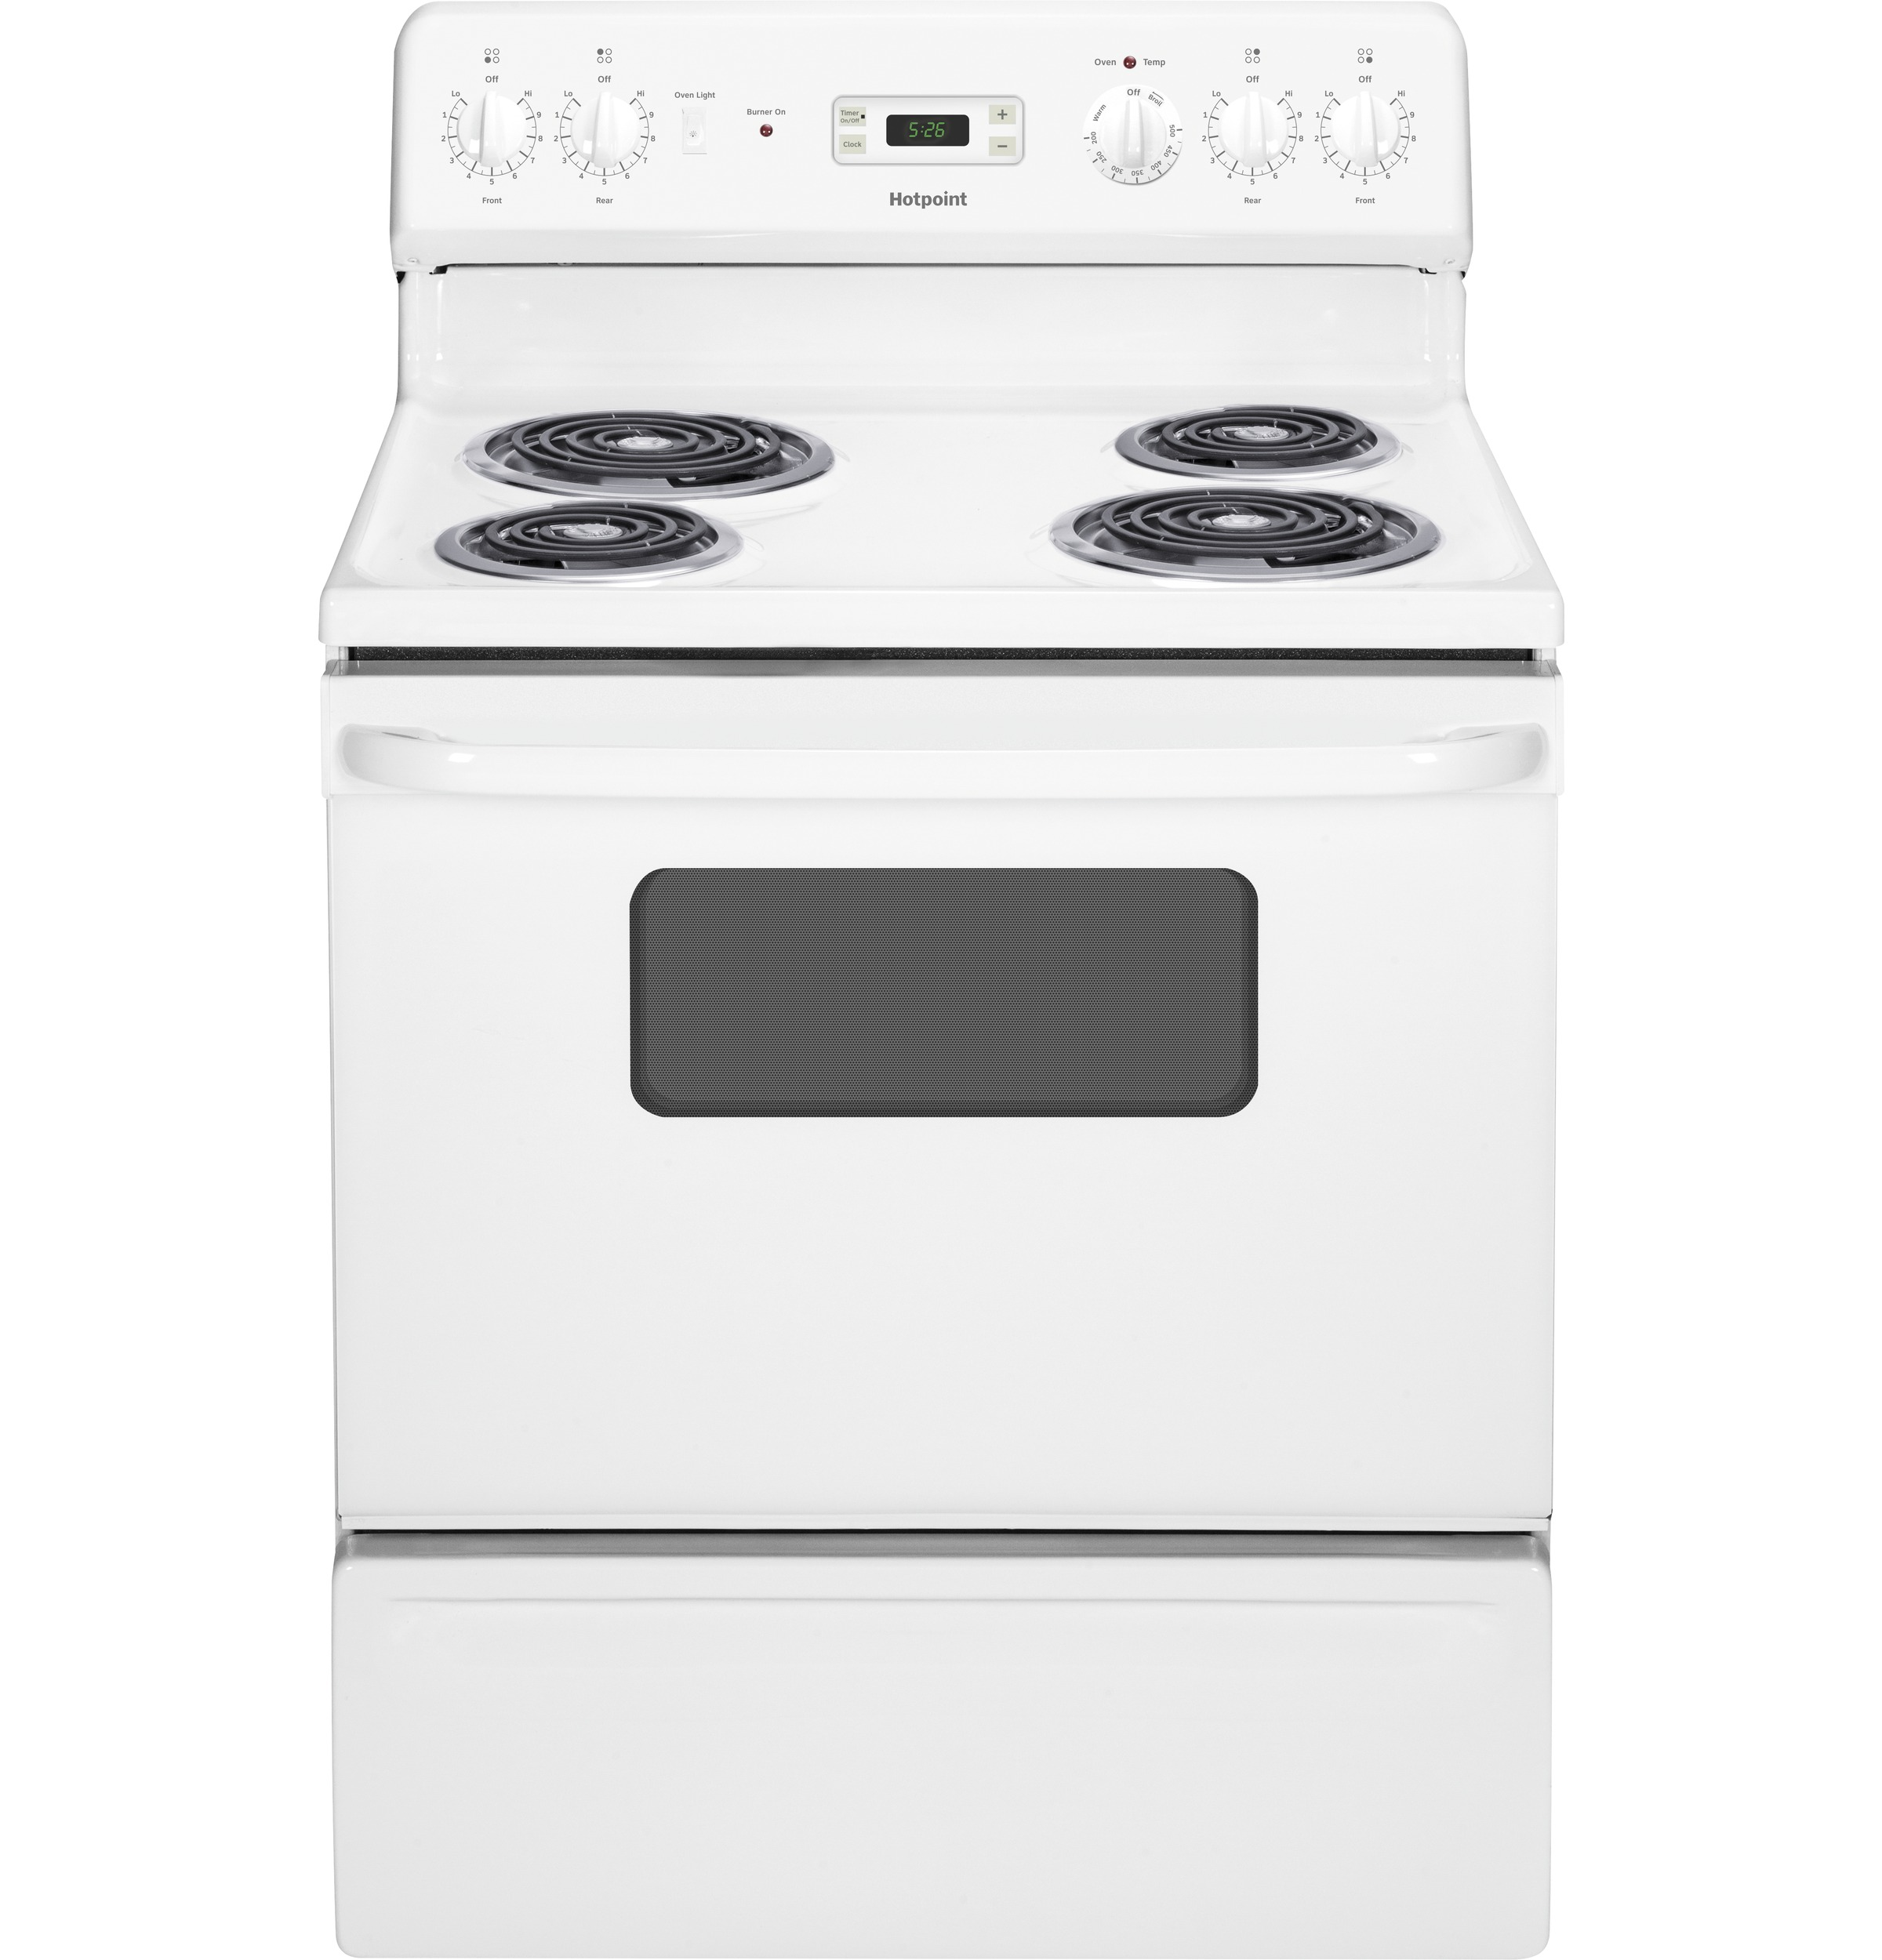 Maxresdefault moreover  additionally G likewise Body Parts moreover Dispatcher Requesttype Image   Name. on ge electric oven parts diagram